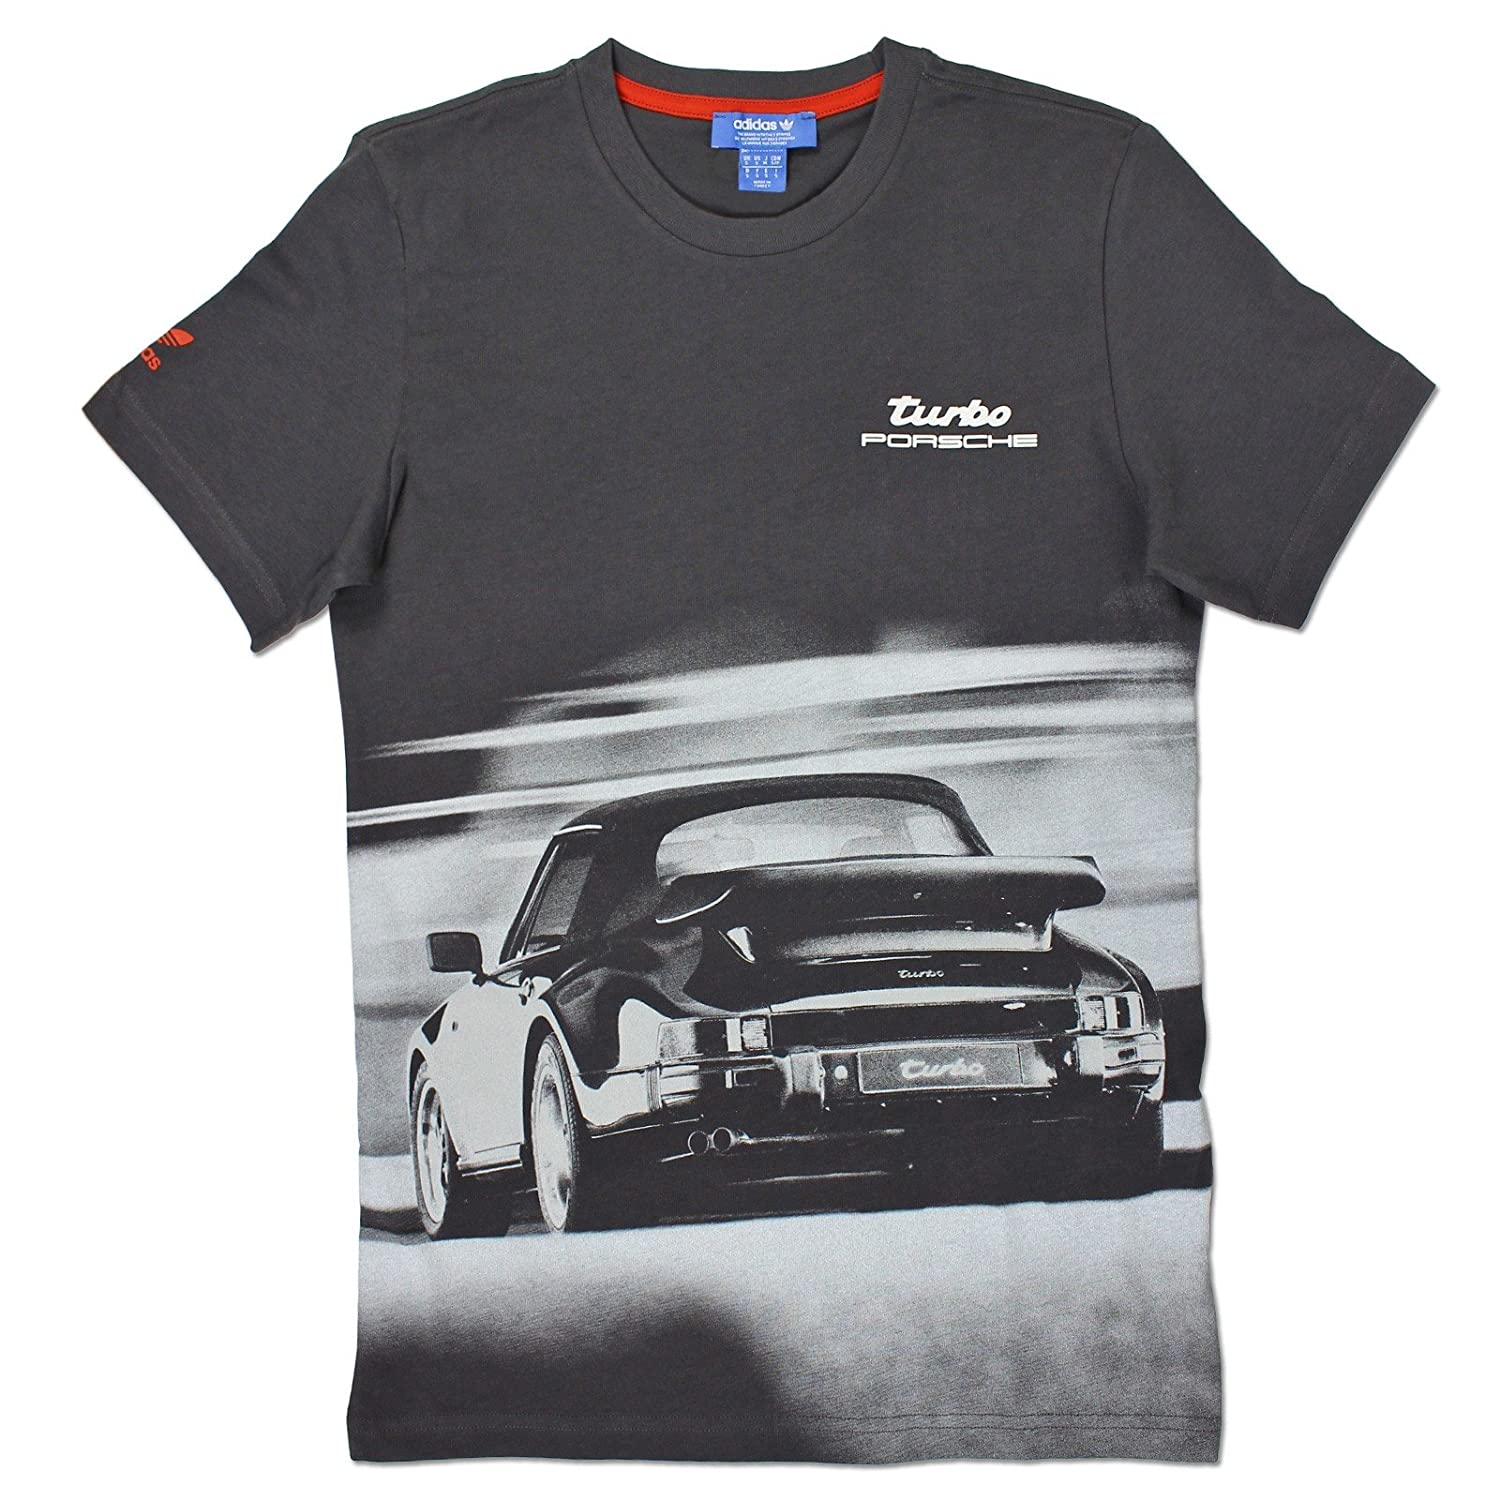 Adidas Originals Herren Porsche 911 Turbo Design Tee Shirt